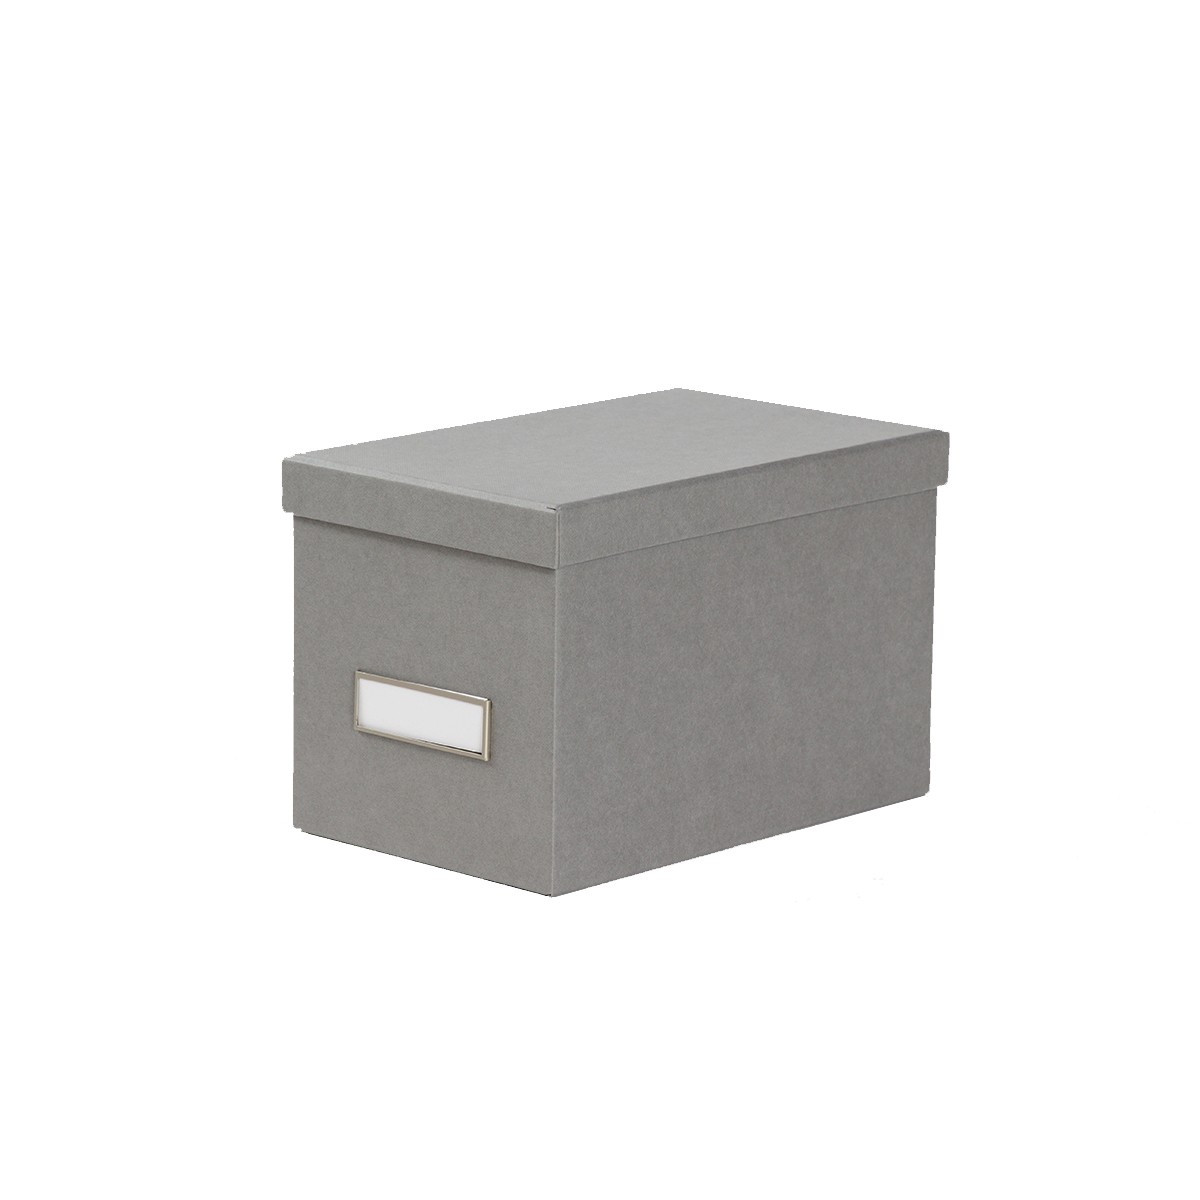 bo te de rangement cd en carton gris clair. Black Bedroom Furniture Sets. Home Design Ideas